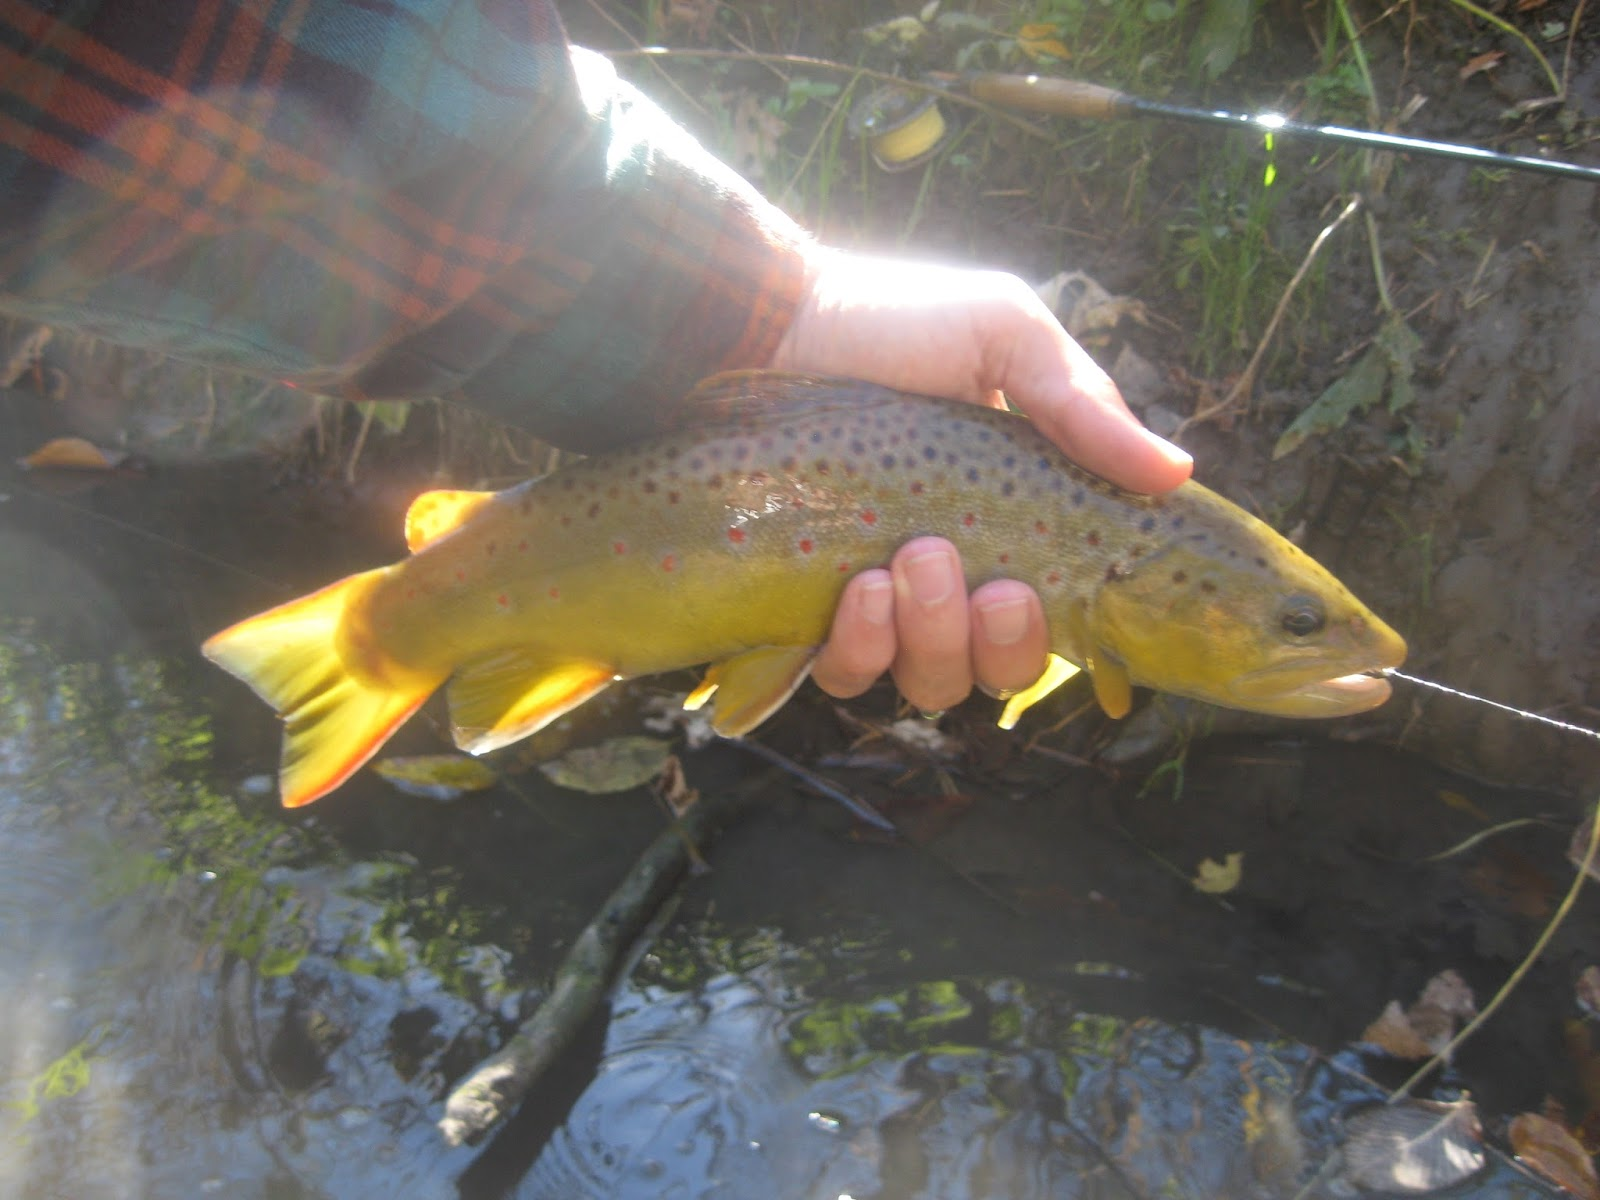 Minnesota driftless fly fishing trip report state park for Driftless fly fishing